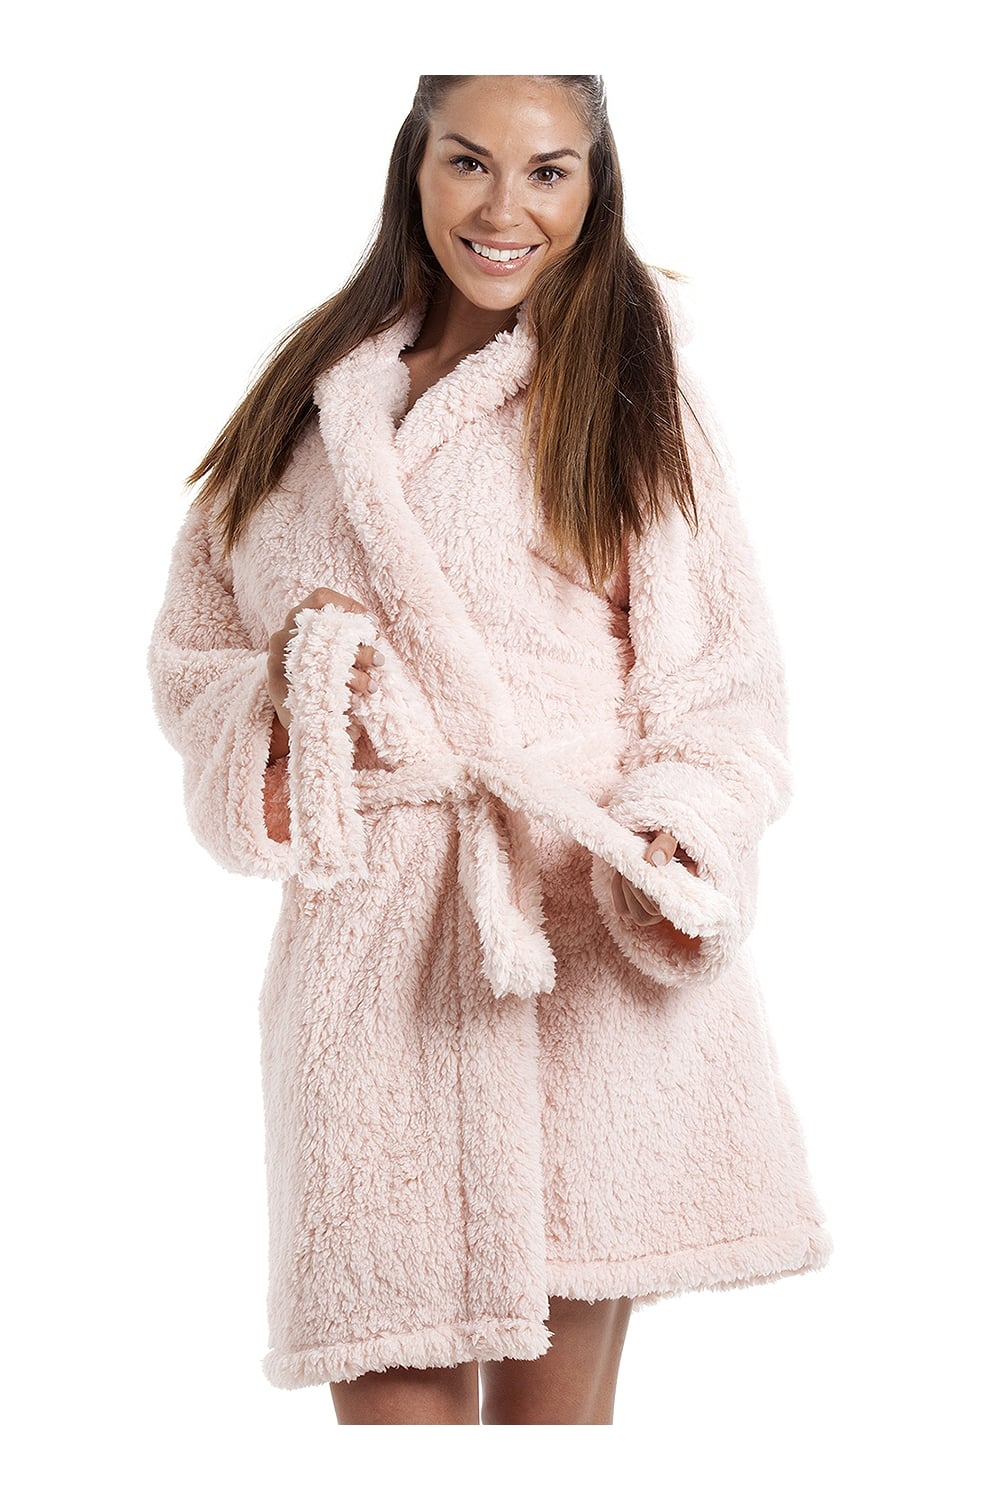 Camille Luxurious Lightweight Soft Fluffy Fleece Pink Hooded Dressing Gown 796c50555